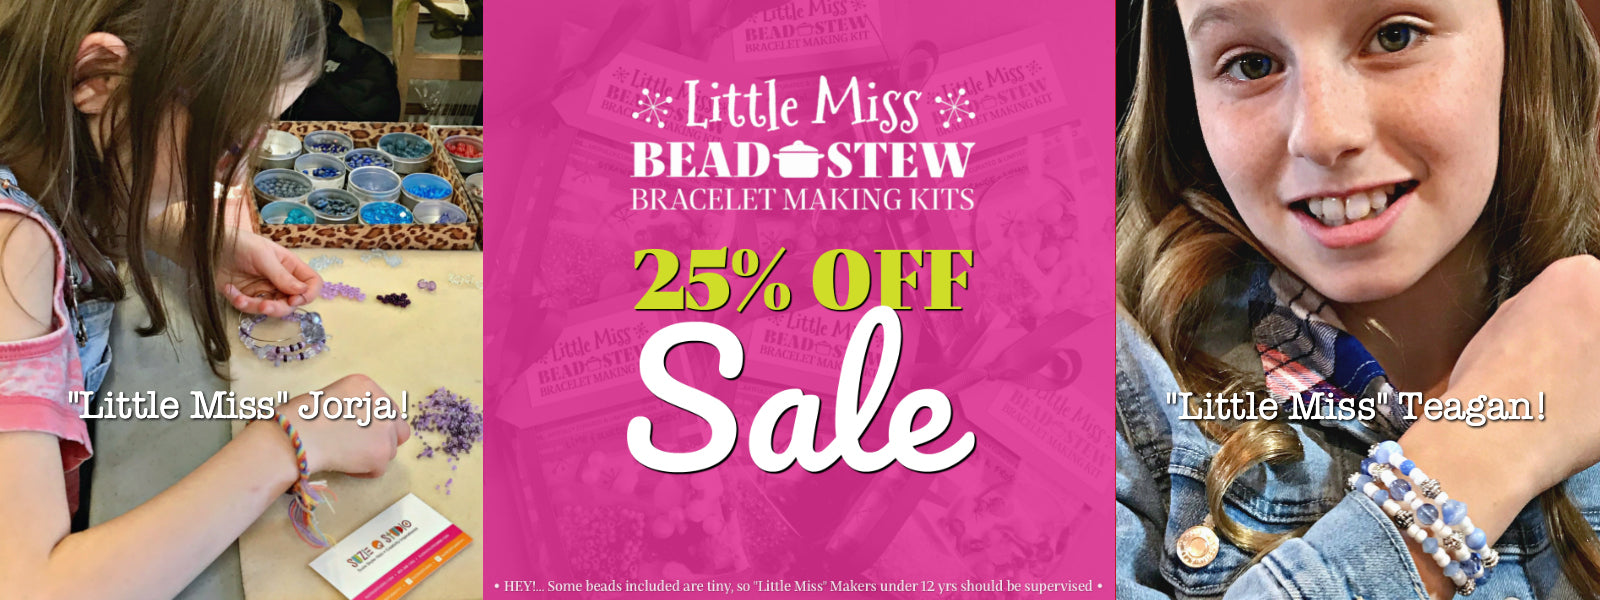 """Our BEAD STEW kid's bracelet making kits are perfect for """"Little Miss"""" jewelry makers. The bead and color combinations ensure it's easy to create the bangle-style bracelet. For a limited time, they're all on sale for 25% OFF."""